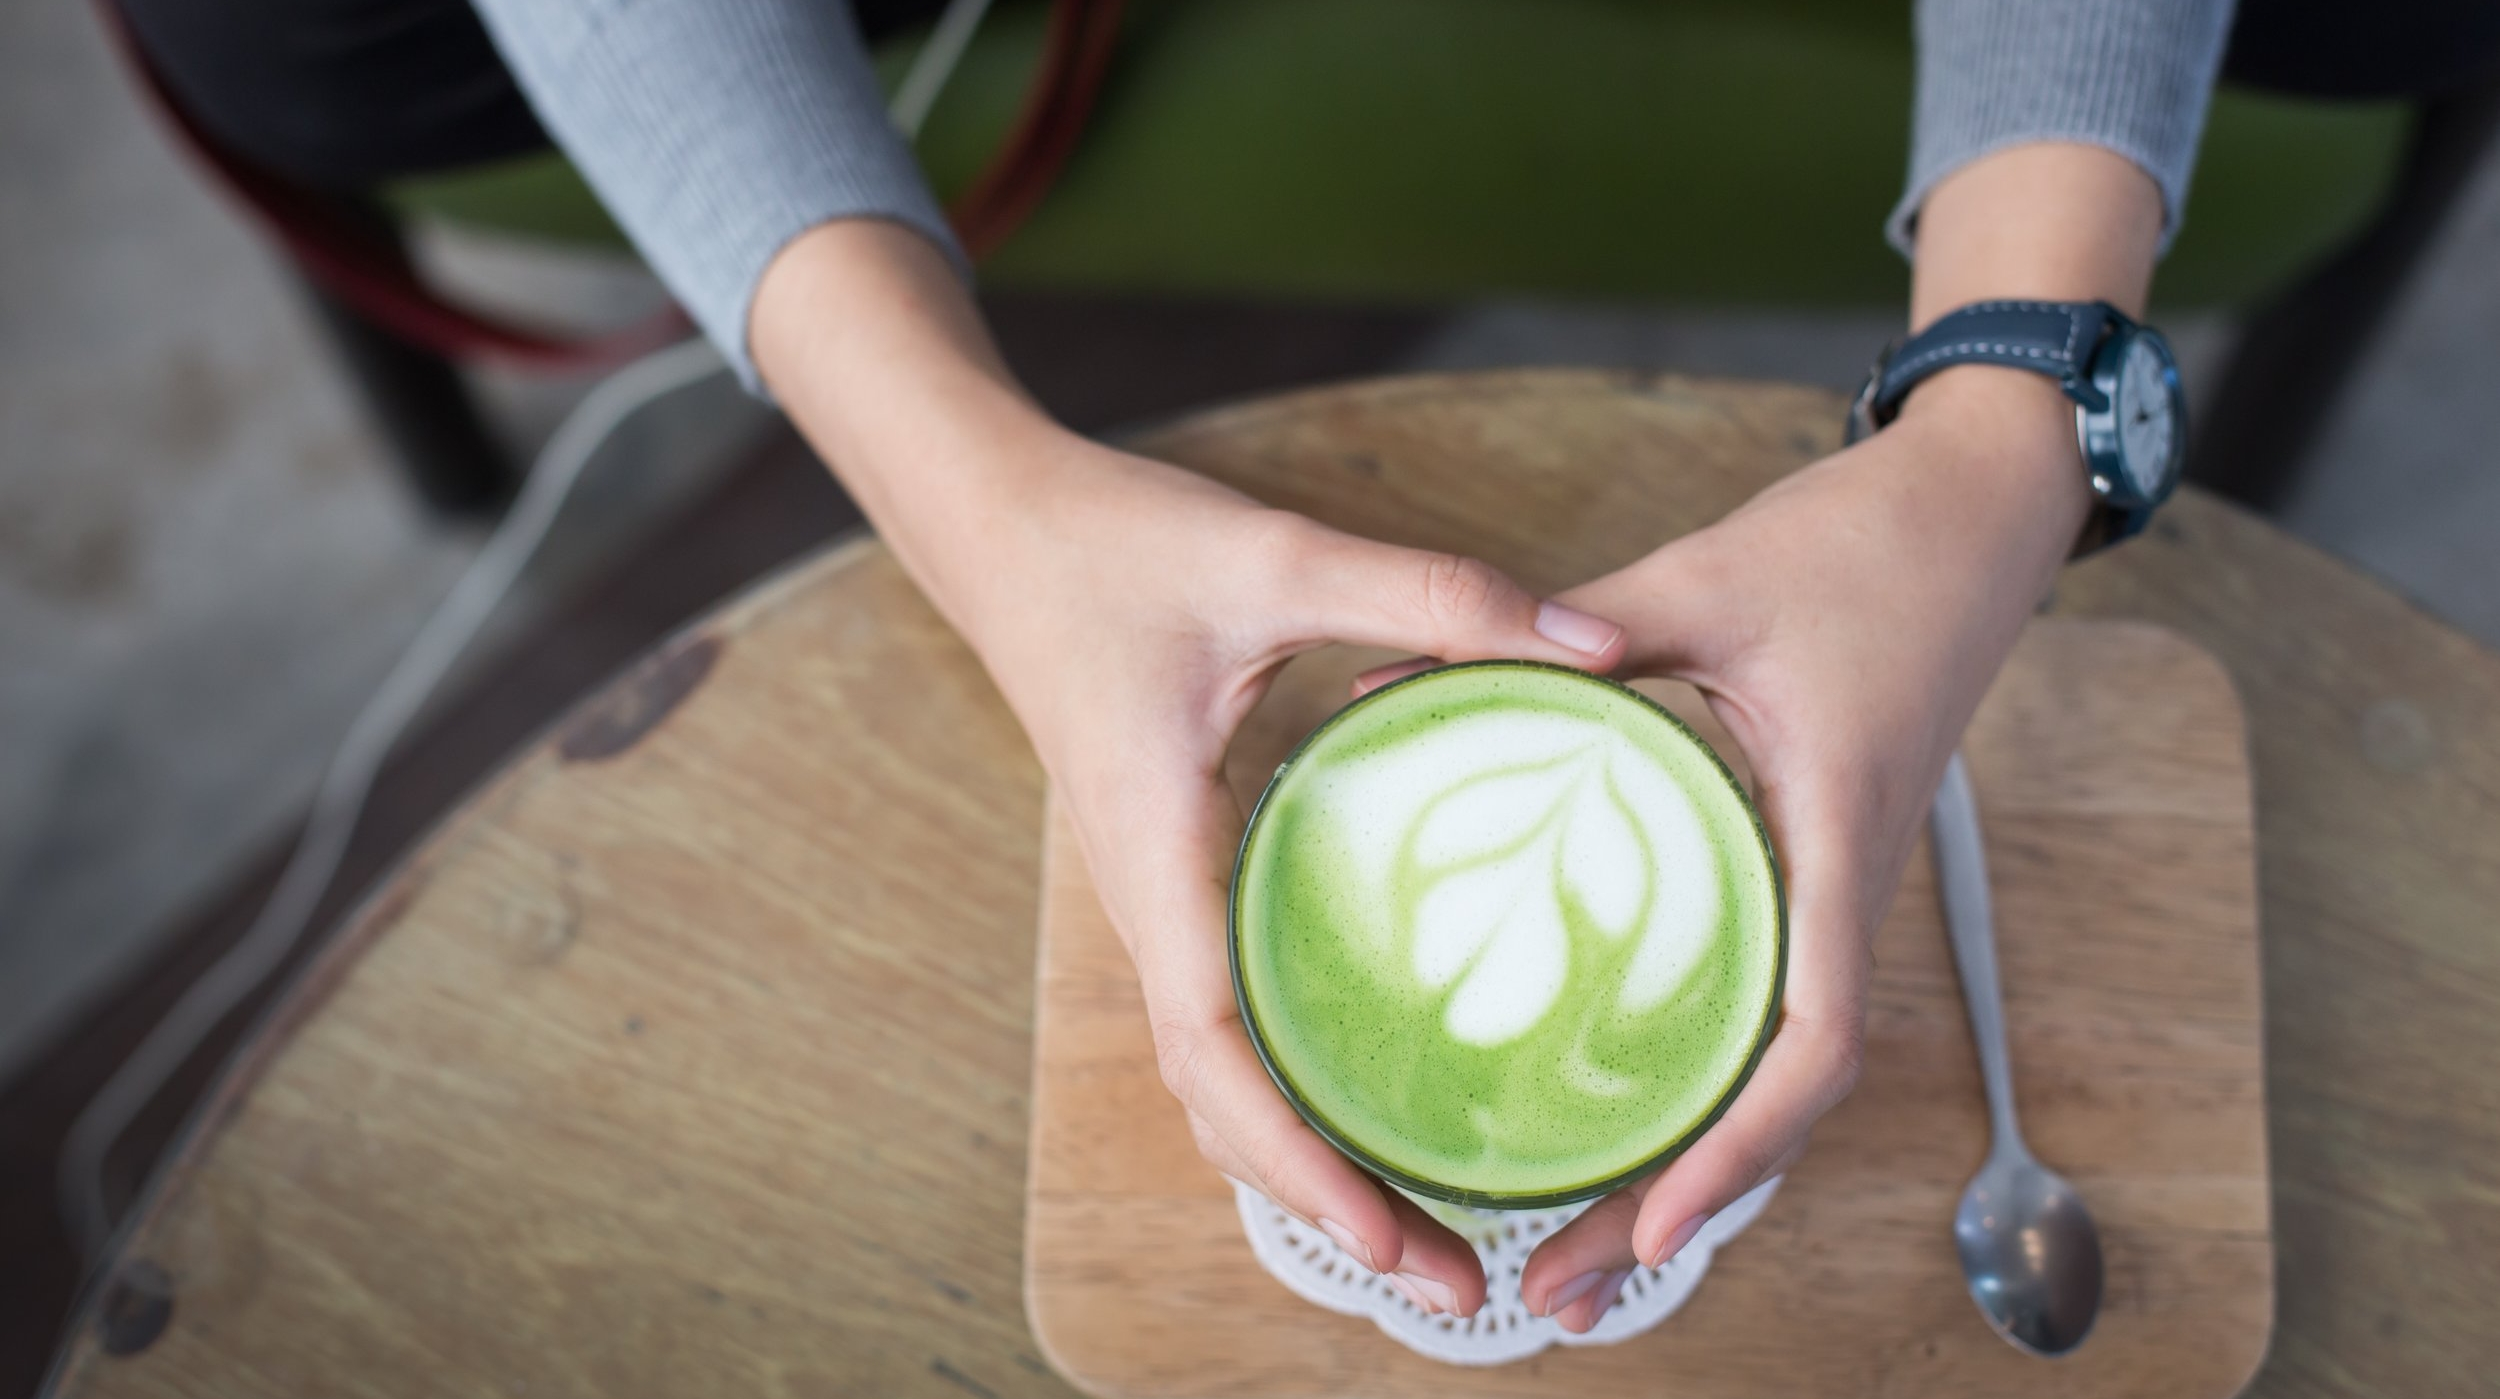 A distinctively green matcha latte